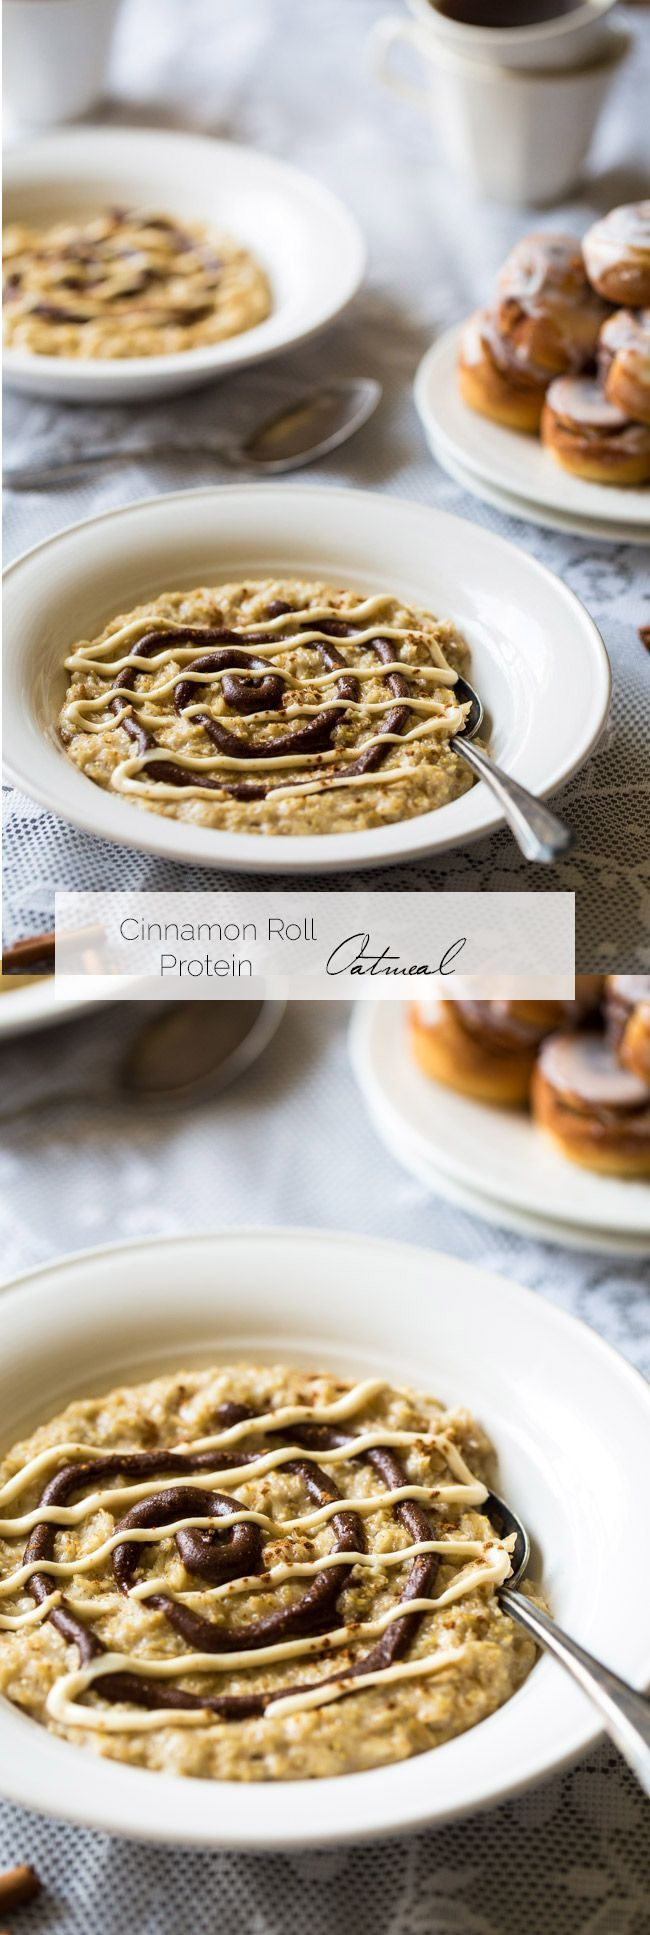 Cinnamon Roll Protein Oatmeal - This tastes EXACLTY like a cinnamon roll except it's SO quick, gluten free, protein packed and naturally sweetened. You NEED to try this! |  | @FoodFaithFit